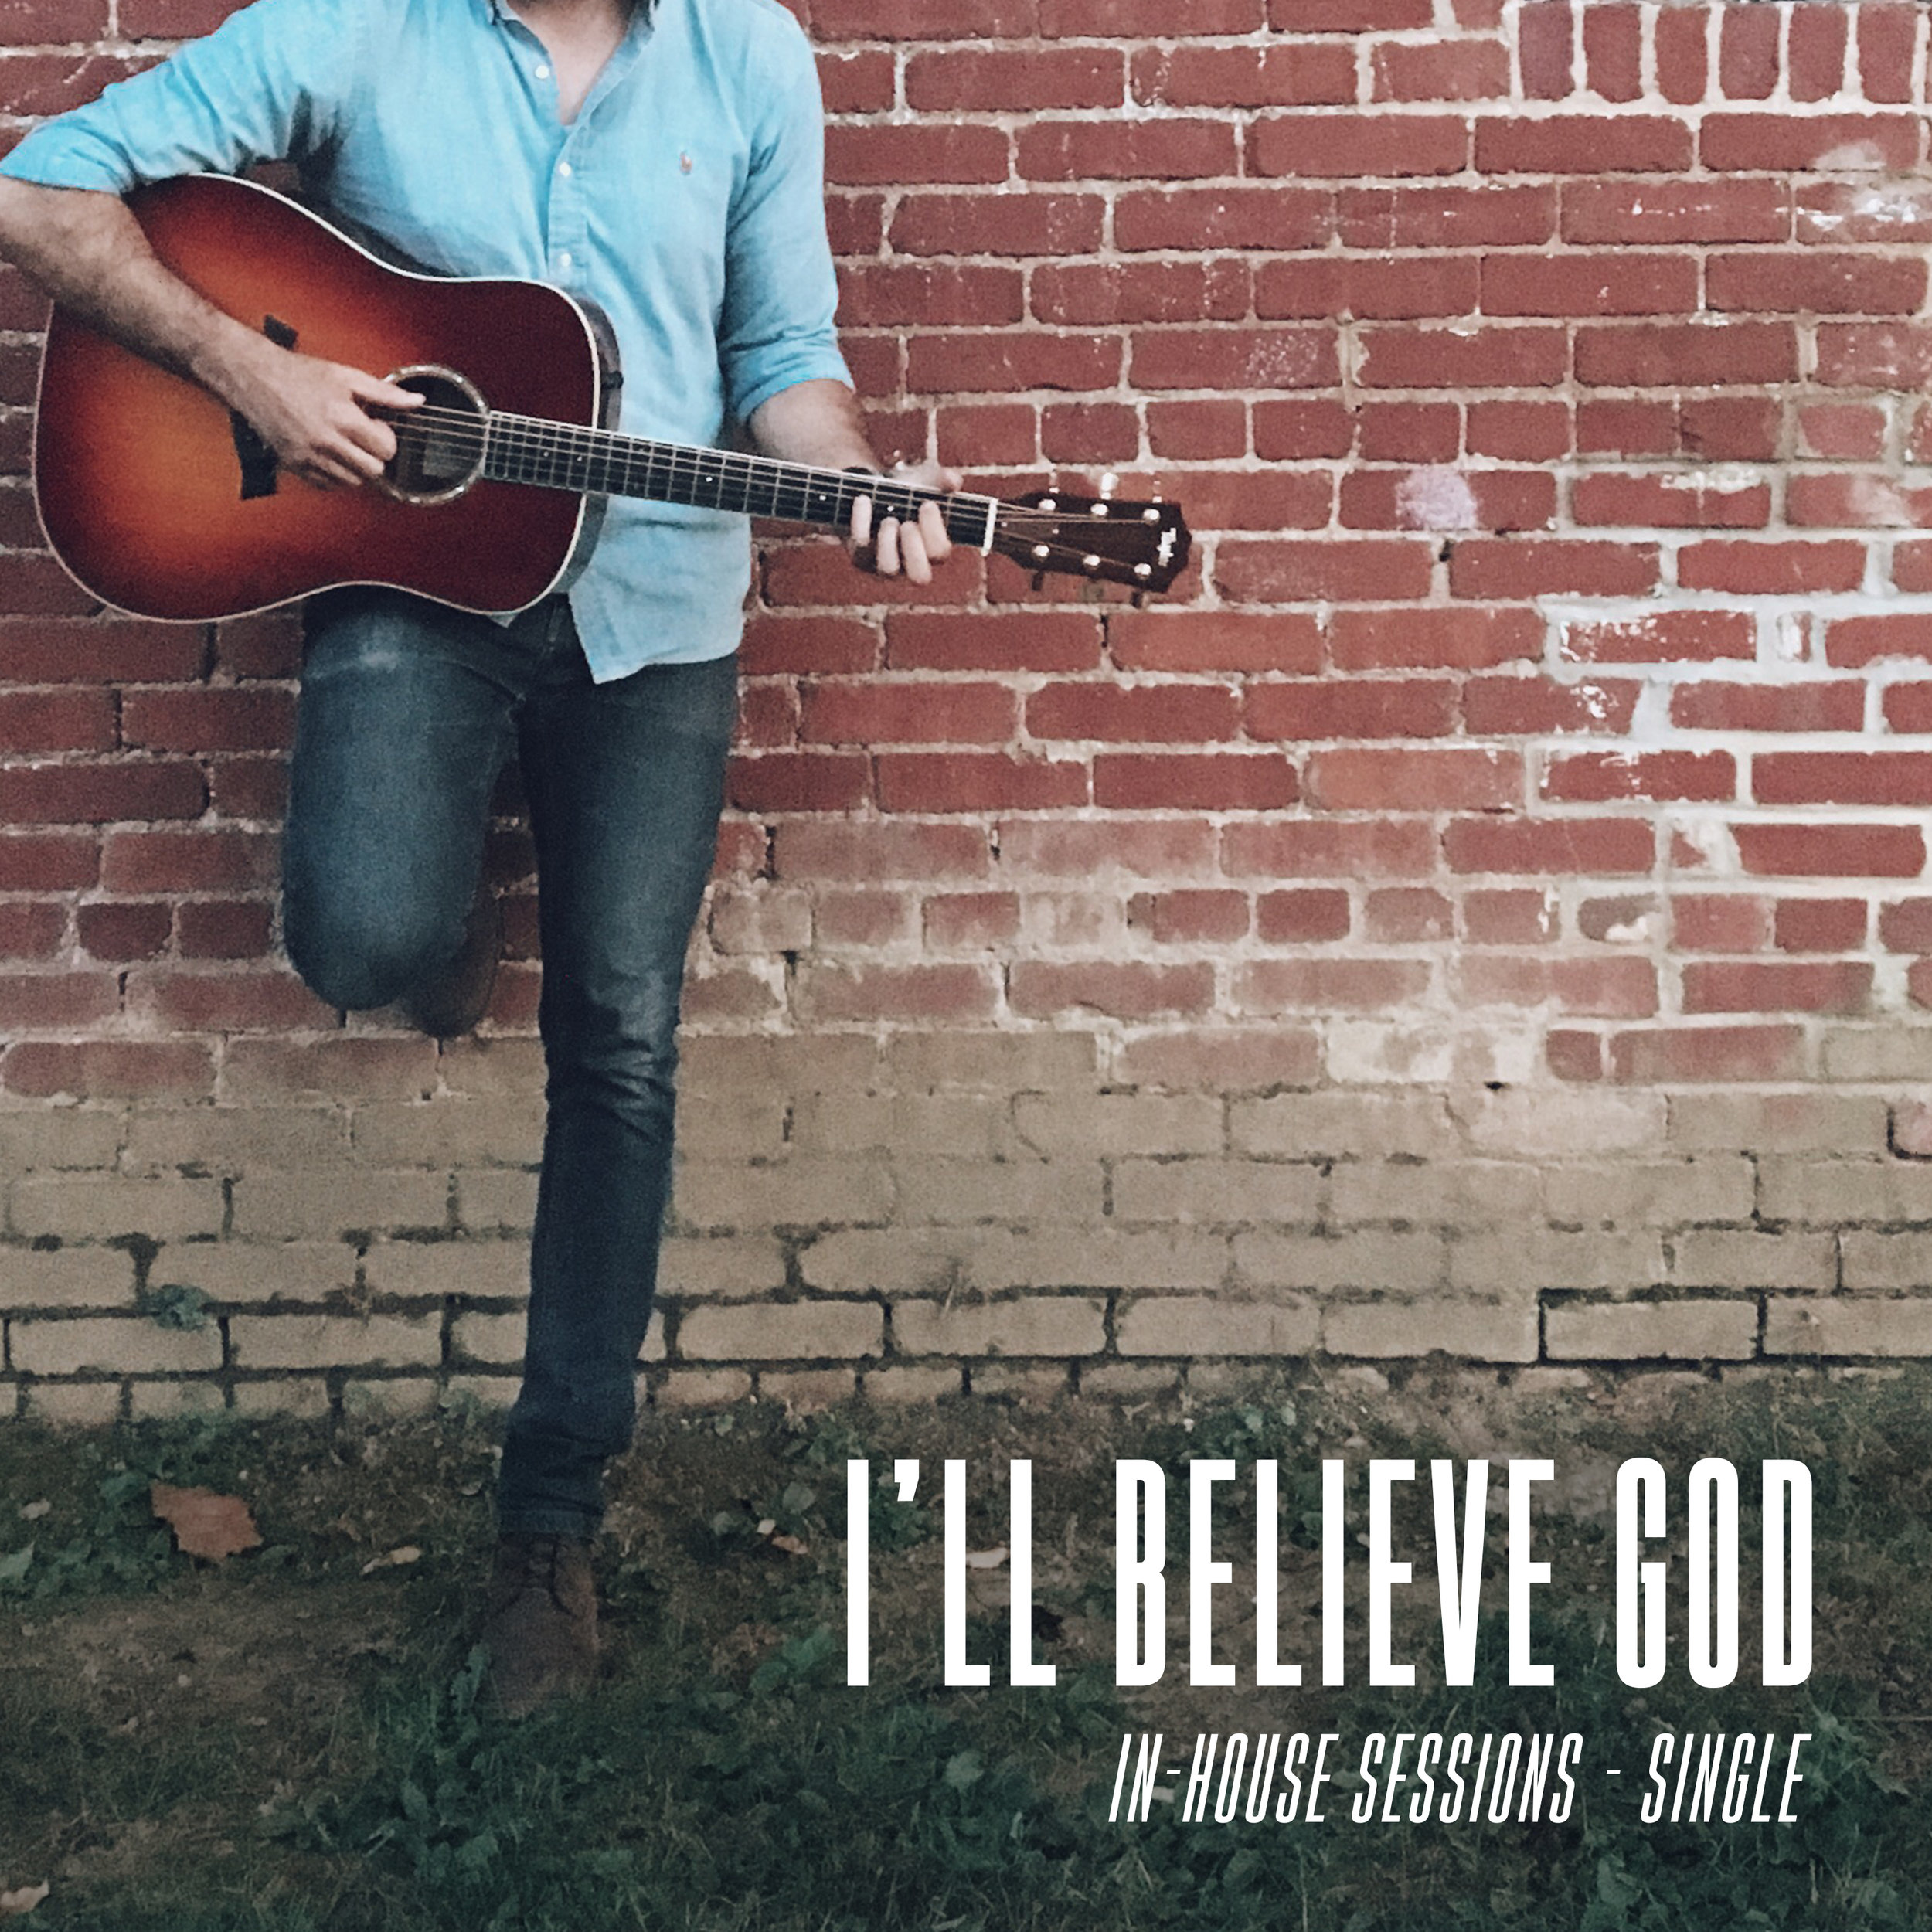 This song originates from trying to articulate that we can believe God no matter the circumstance because of His character and His ability.